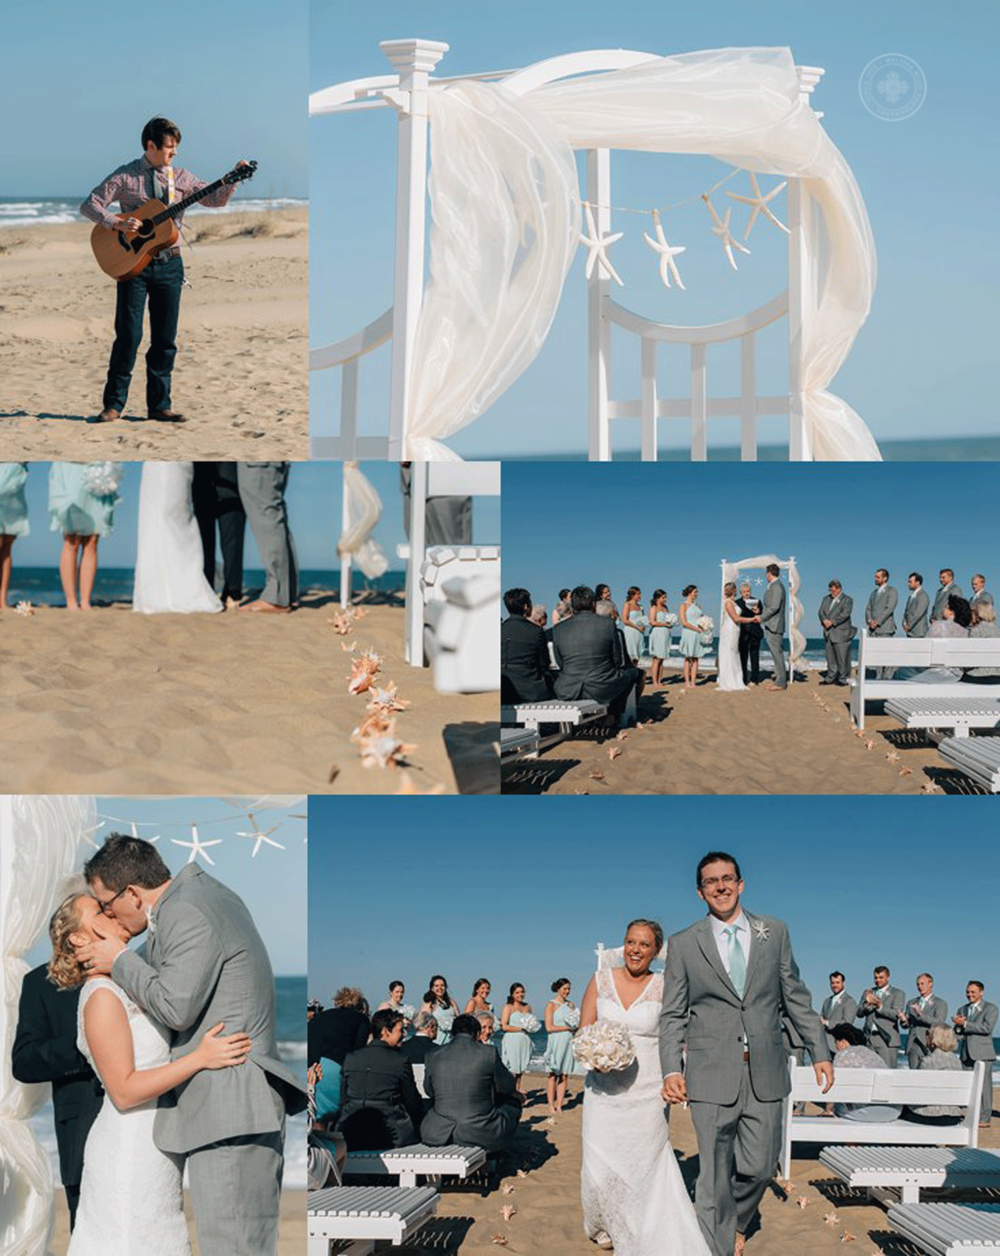 virginia-beach-wedding-photographers-melissa-bliss-photography-sandbridge-beach-wedding-day-photos-blue-white-beige-beach-wedding-inspiration-.png